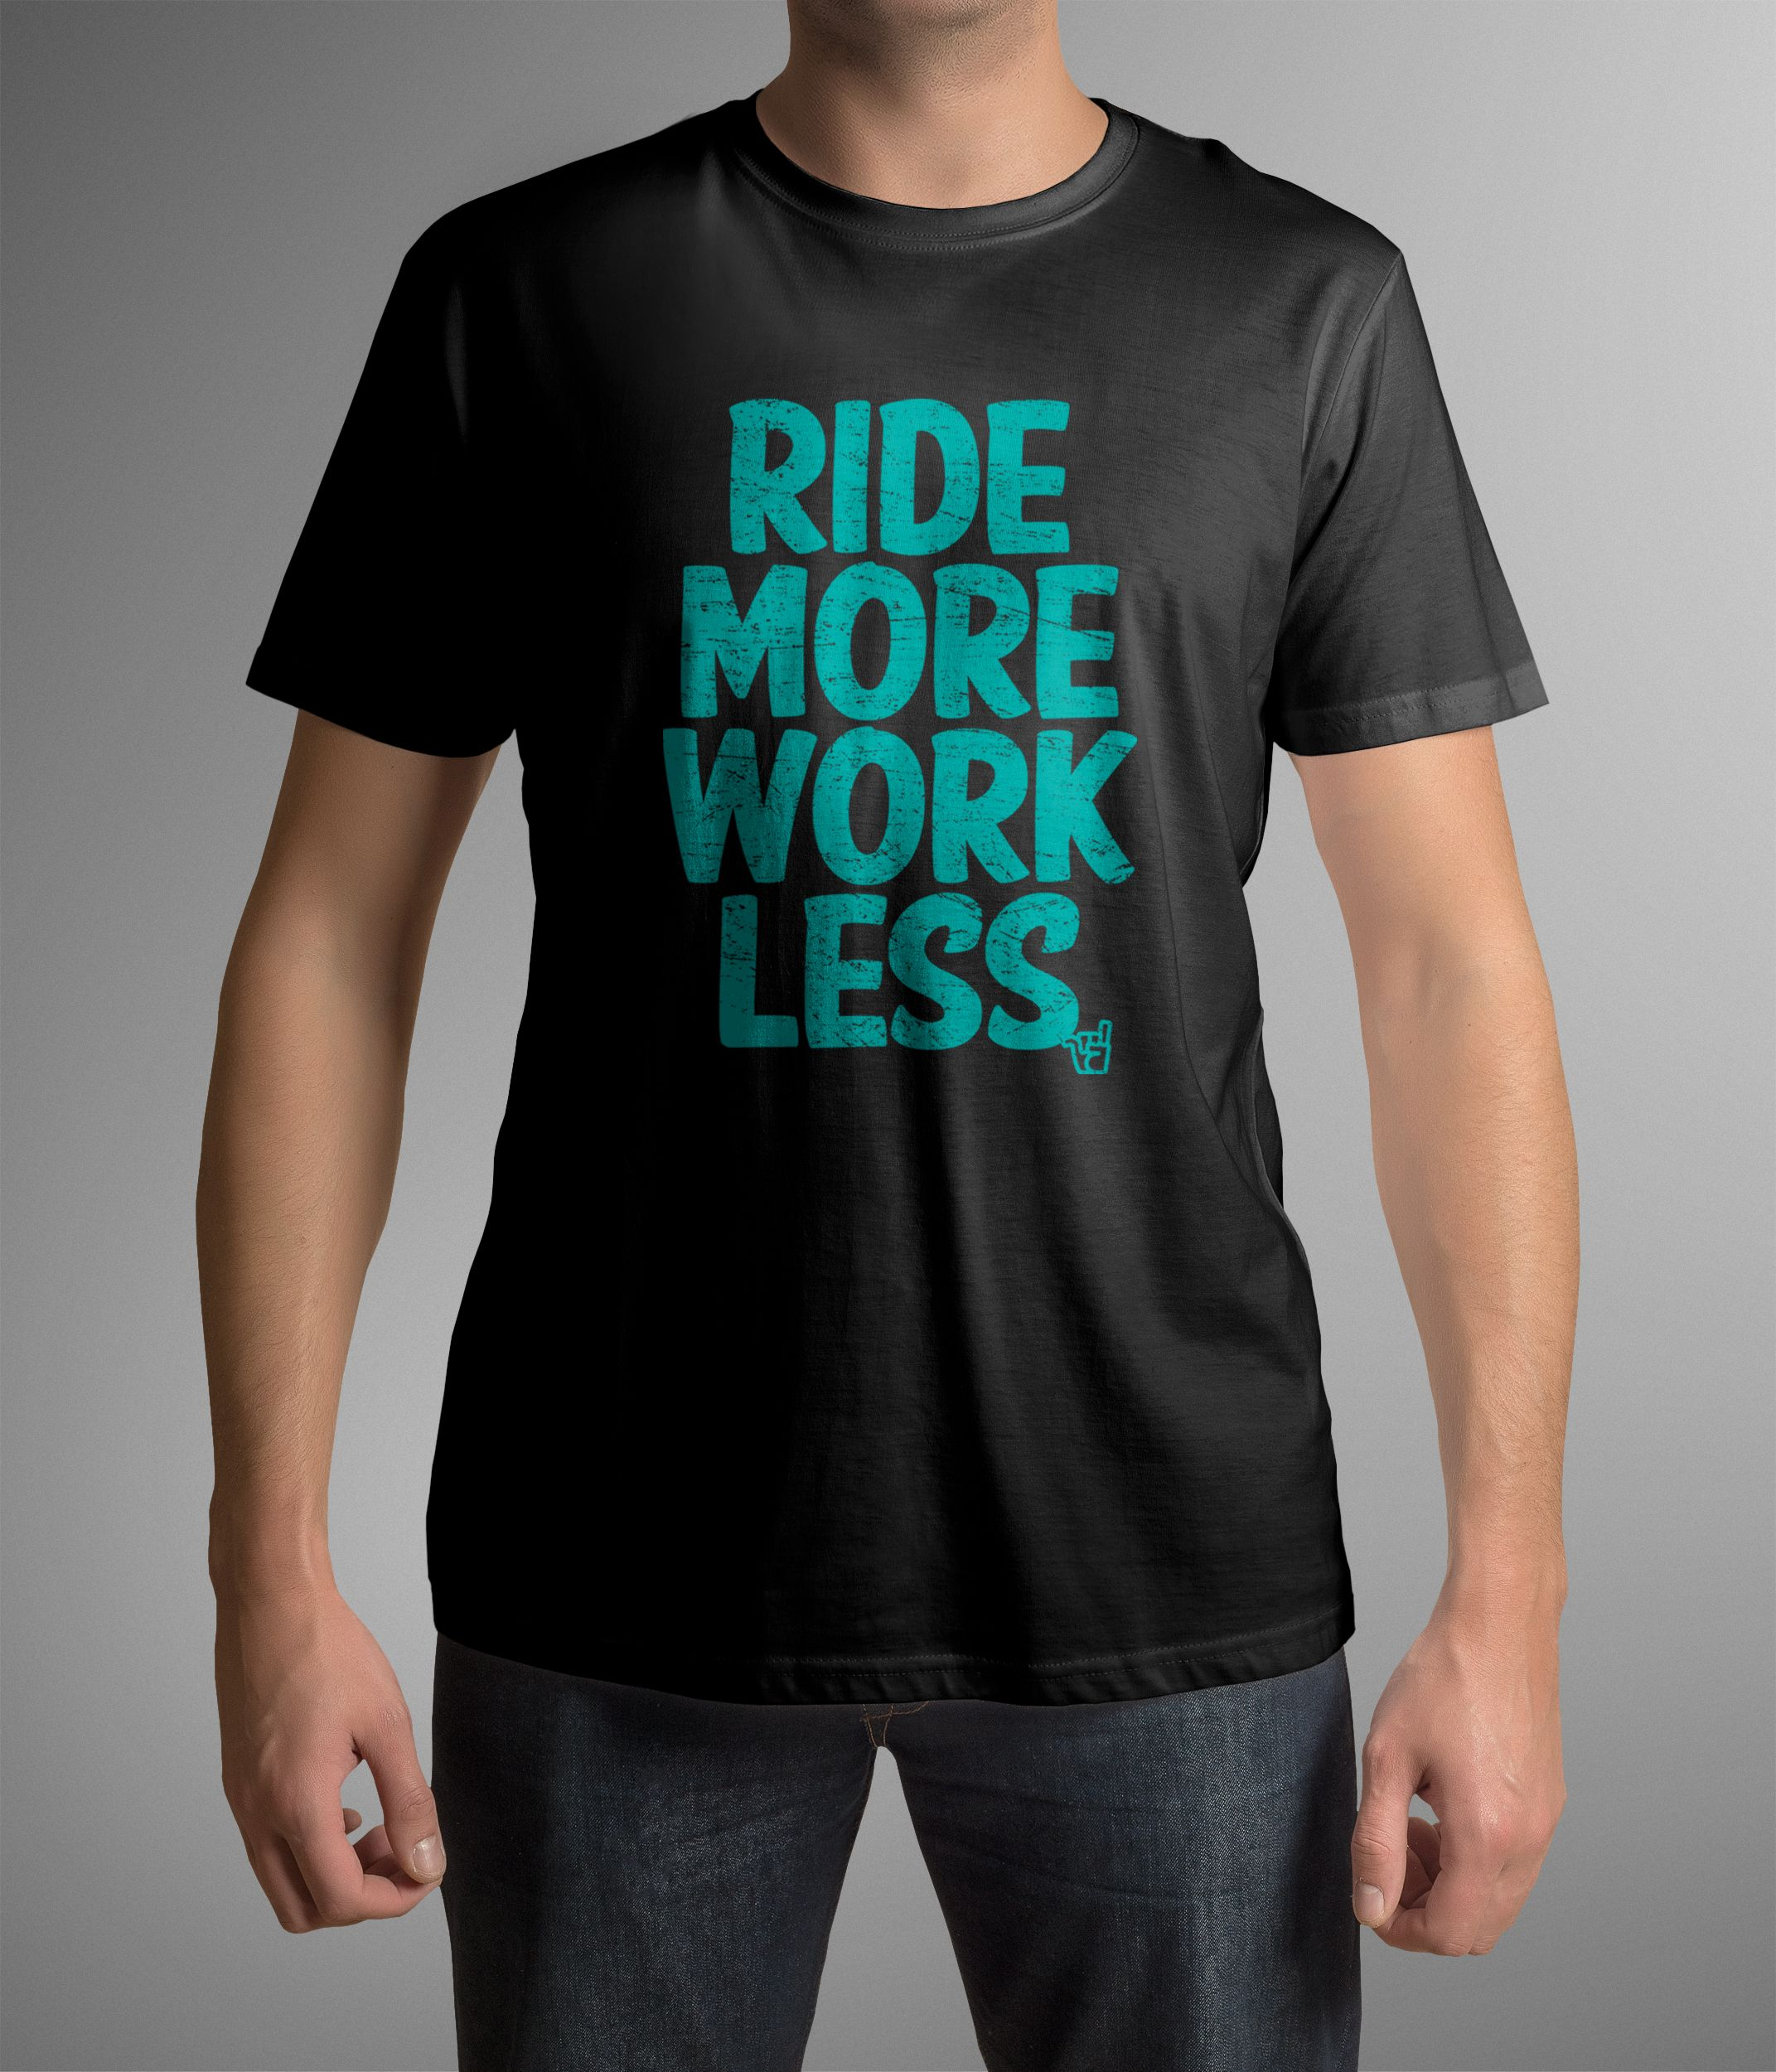 d5af4d690 Ride More Work Less tee in Yeti Turquoise from brokenridersuk.com ...